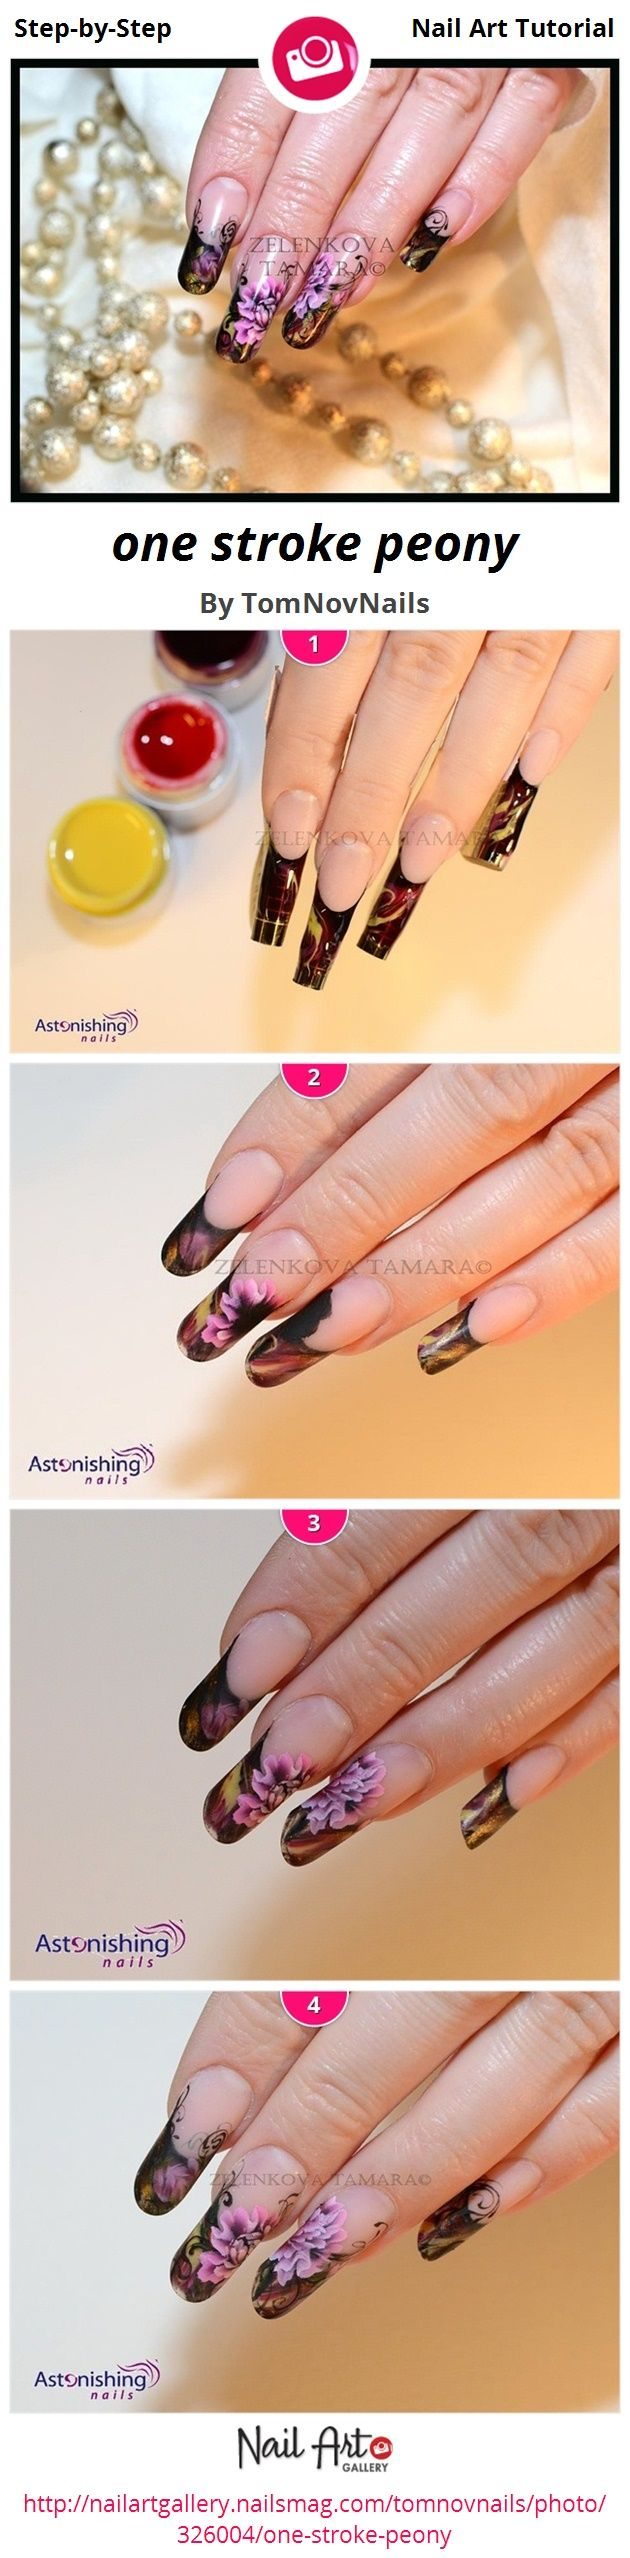 78 best Nailart images on Pinterest | Nail decorations, Nail ...